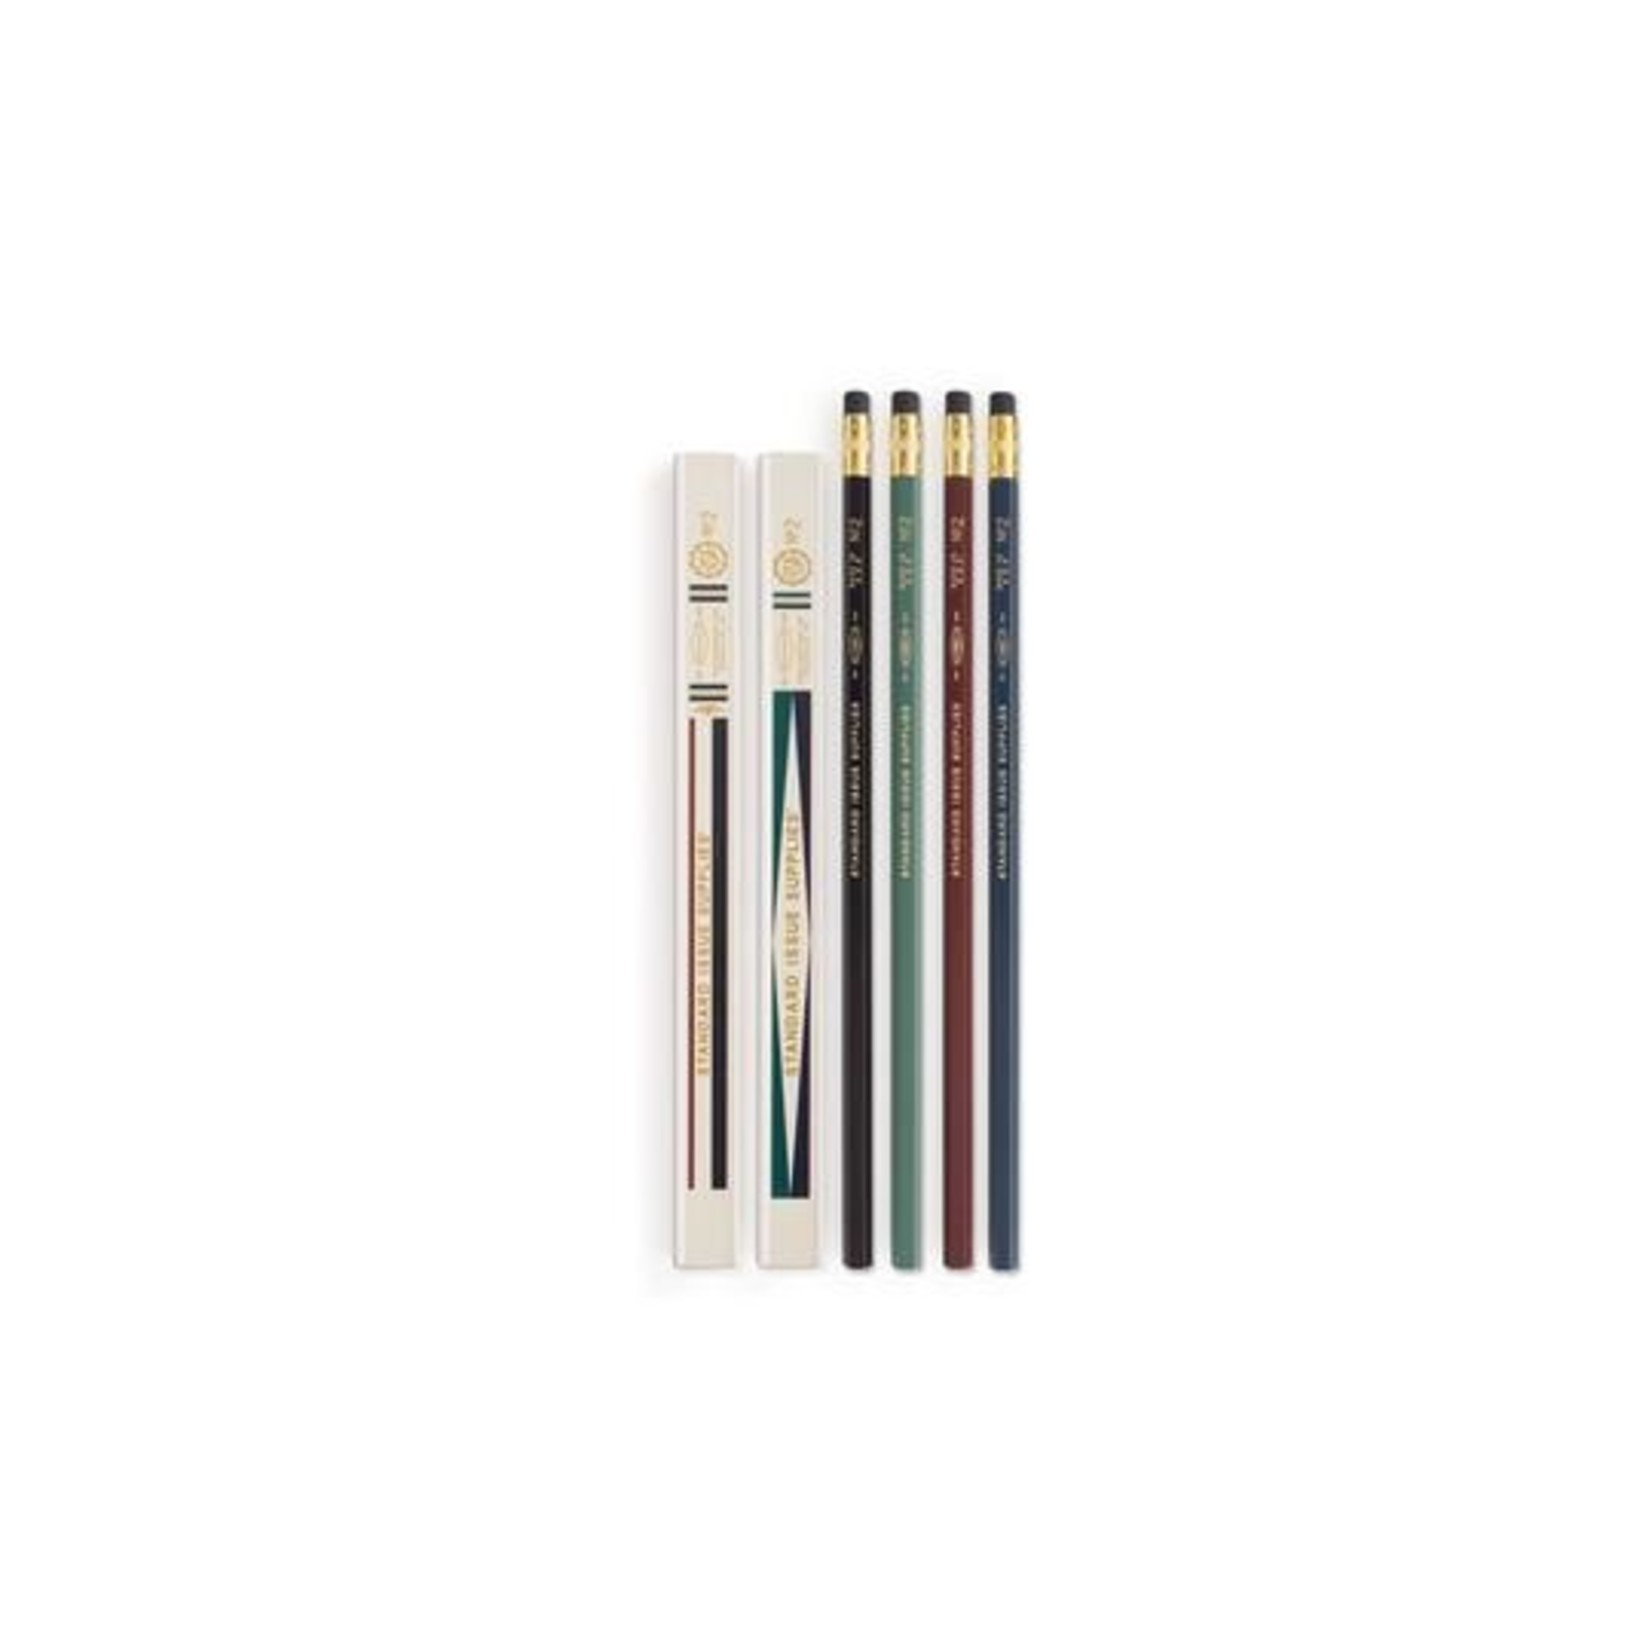 Pencil Set: Standard Issue